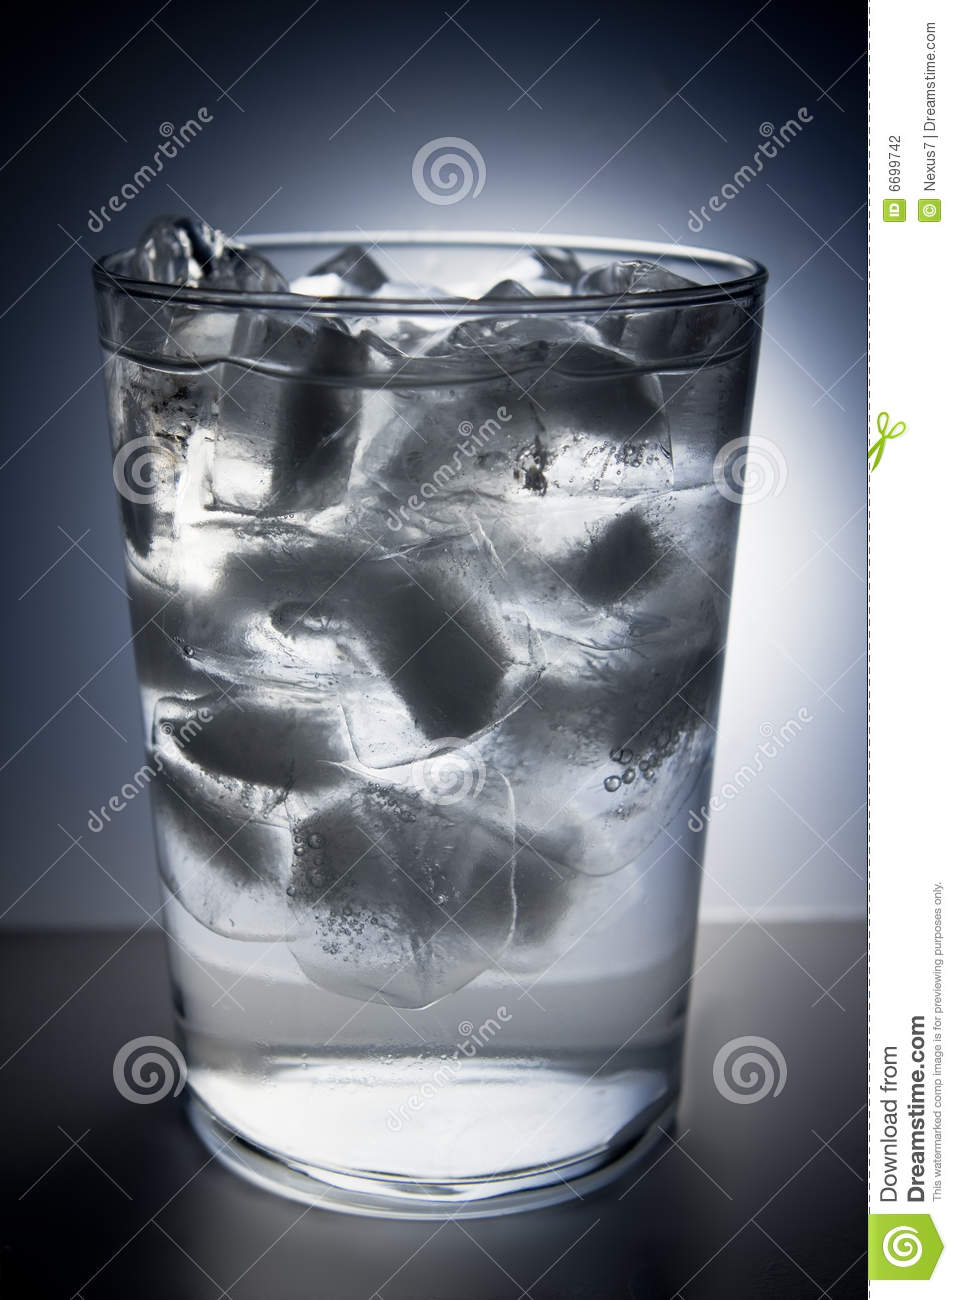 Stock Image Dreamstime Glass Full Of Ice And Water Stock Photography Image 6699742